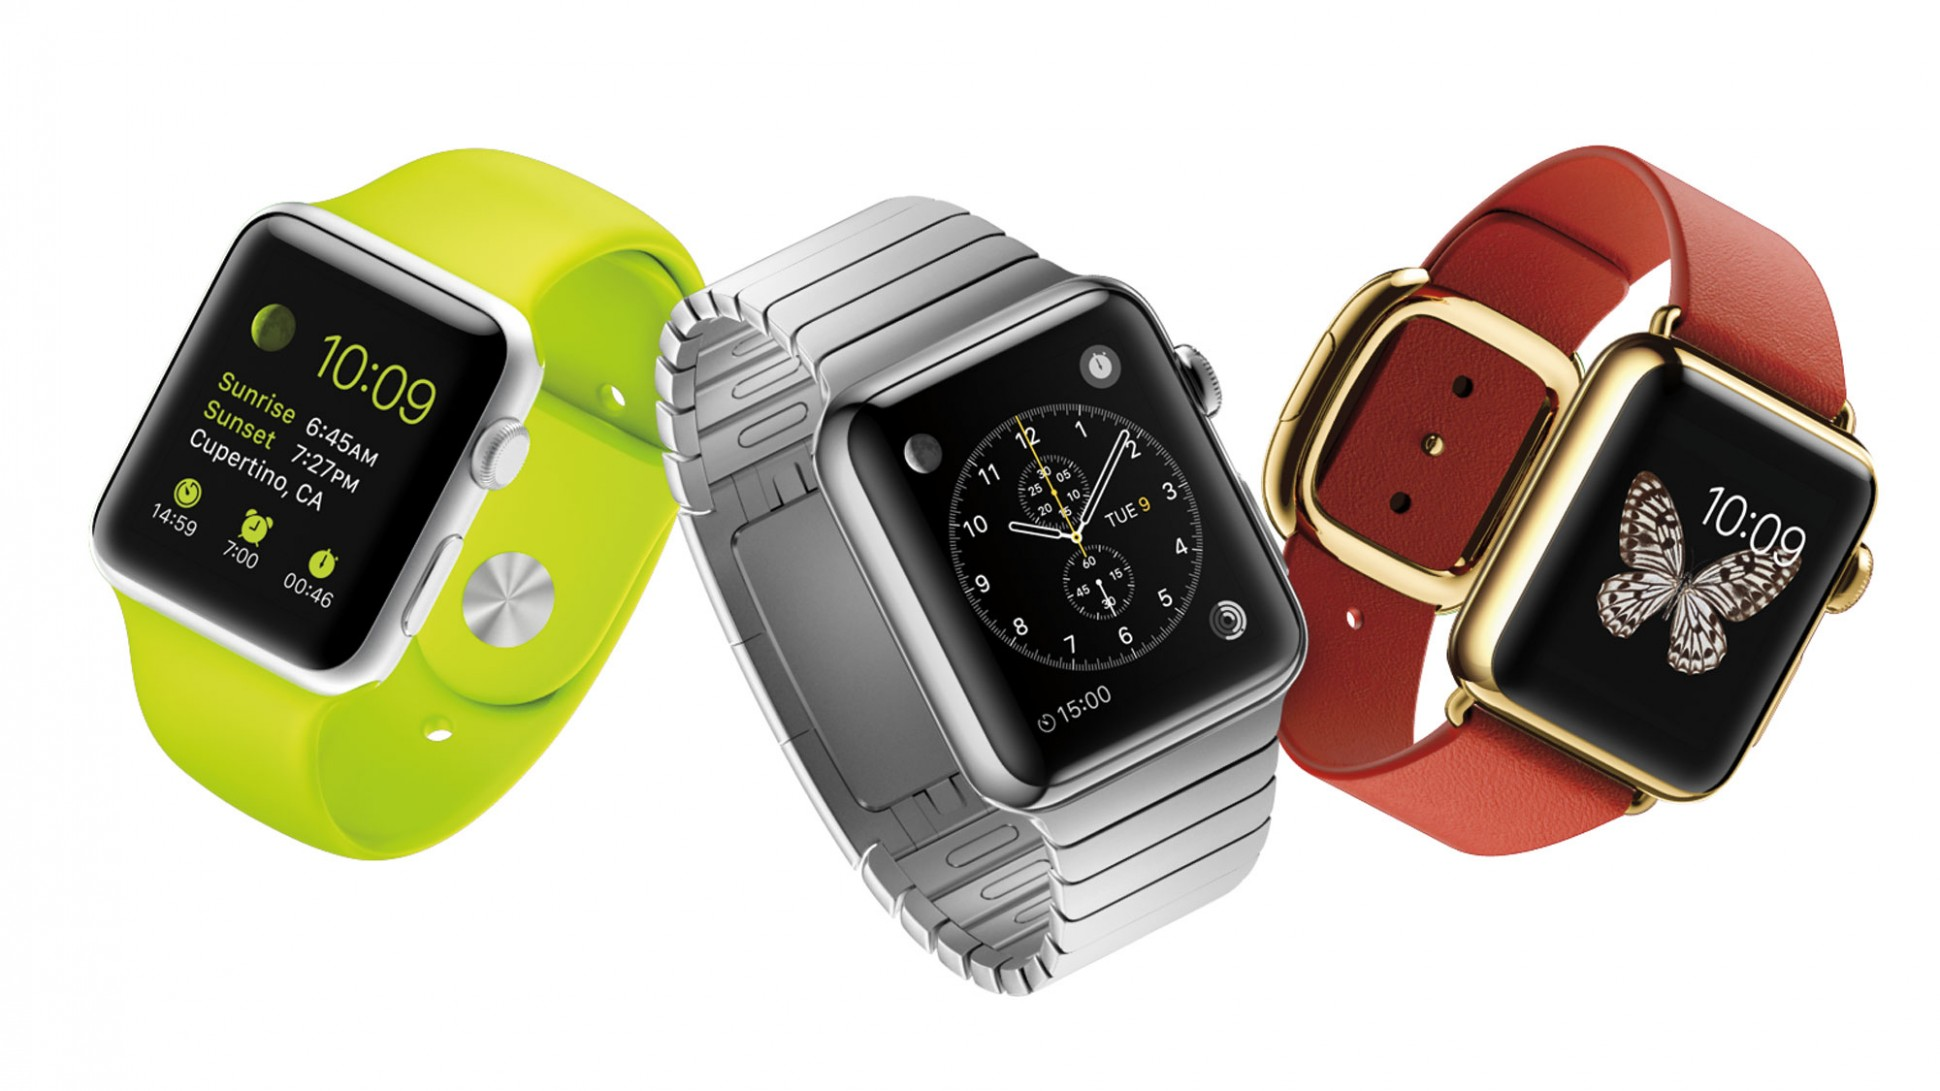 Apple welcomes developers to test their Apple Watch apps